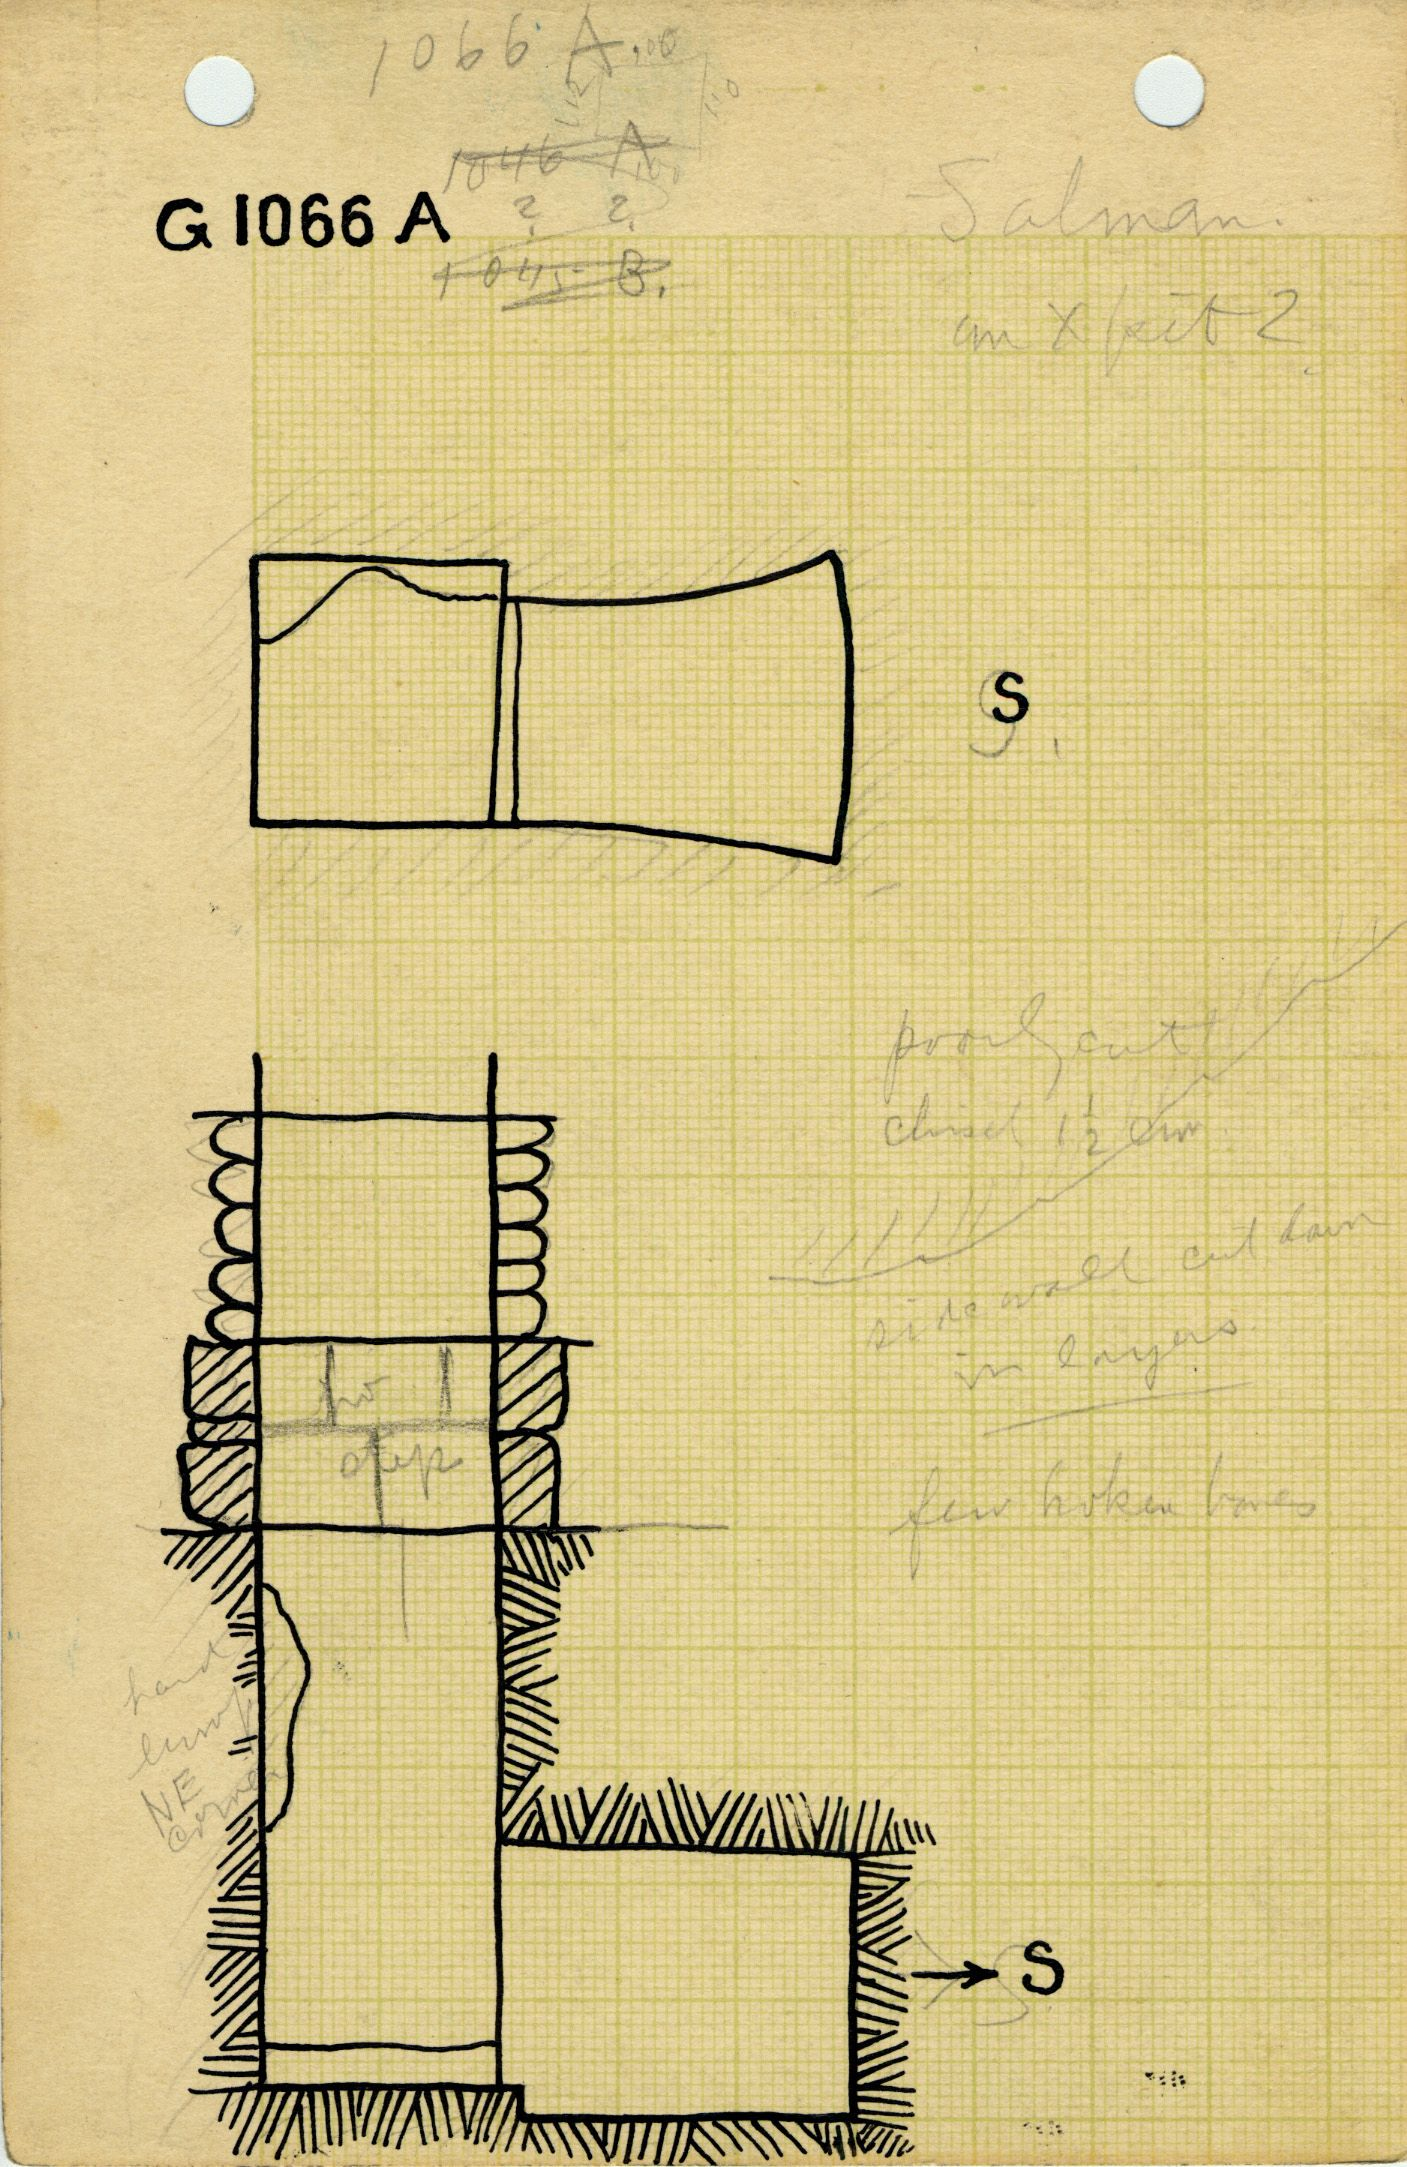 Maps and plans: G 1066, Shaft A